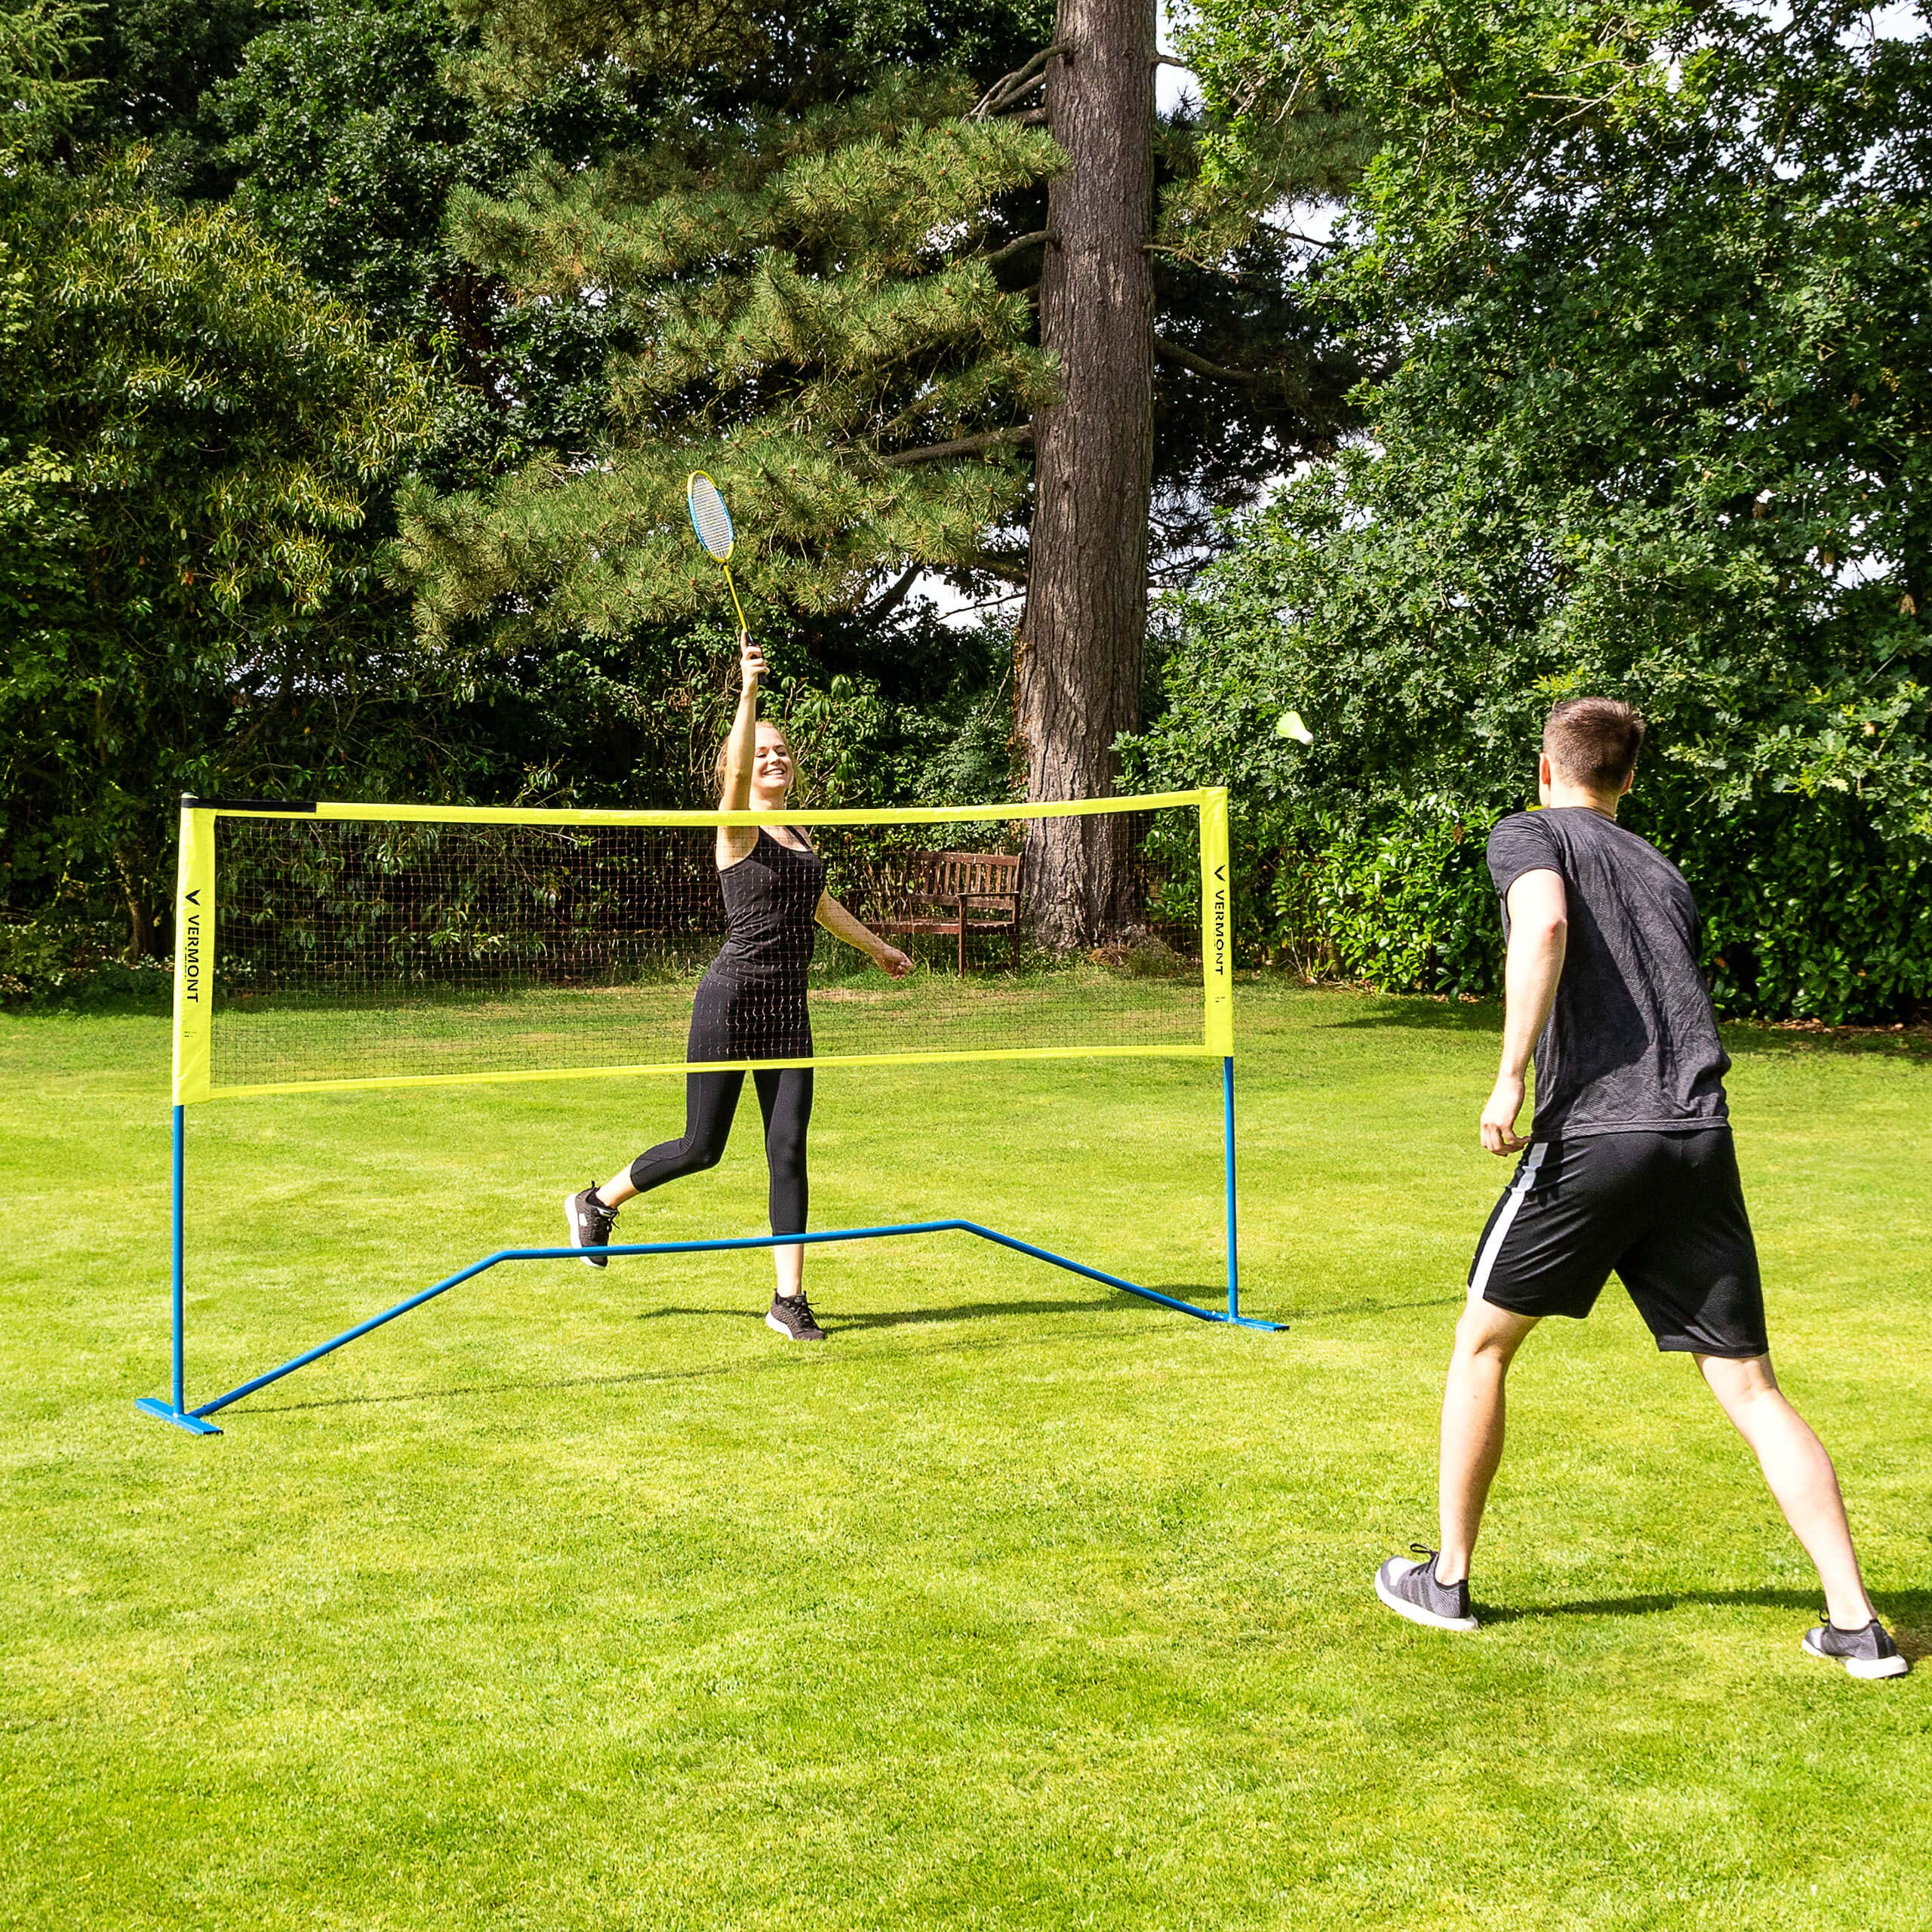 ProCourt Vermont Combi Net | Perfect for Tennis, Badminton, Pickleball, Volleyball & Soccer Tennis | Super Quick Assembly with Steel Poles | Use Indoors, Outdoors, On The Beach Or The Backyard! by ProCourt (Image #6)